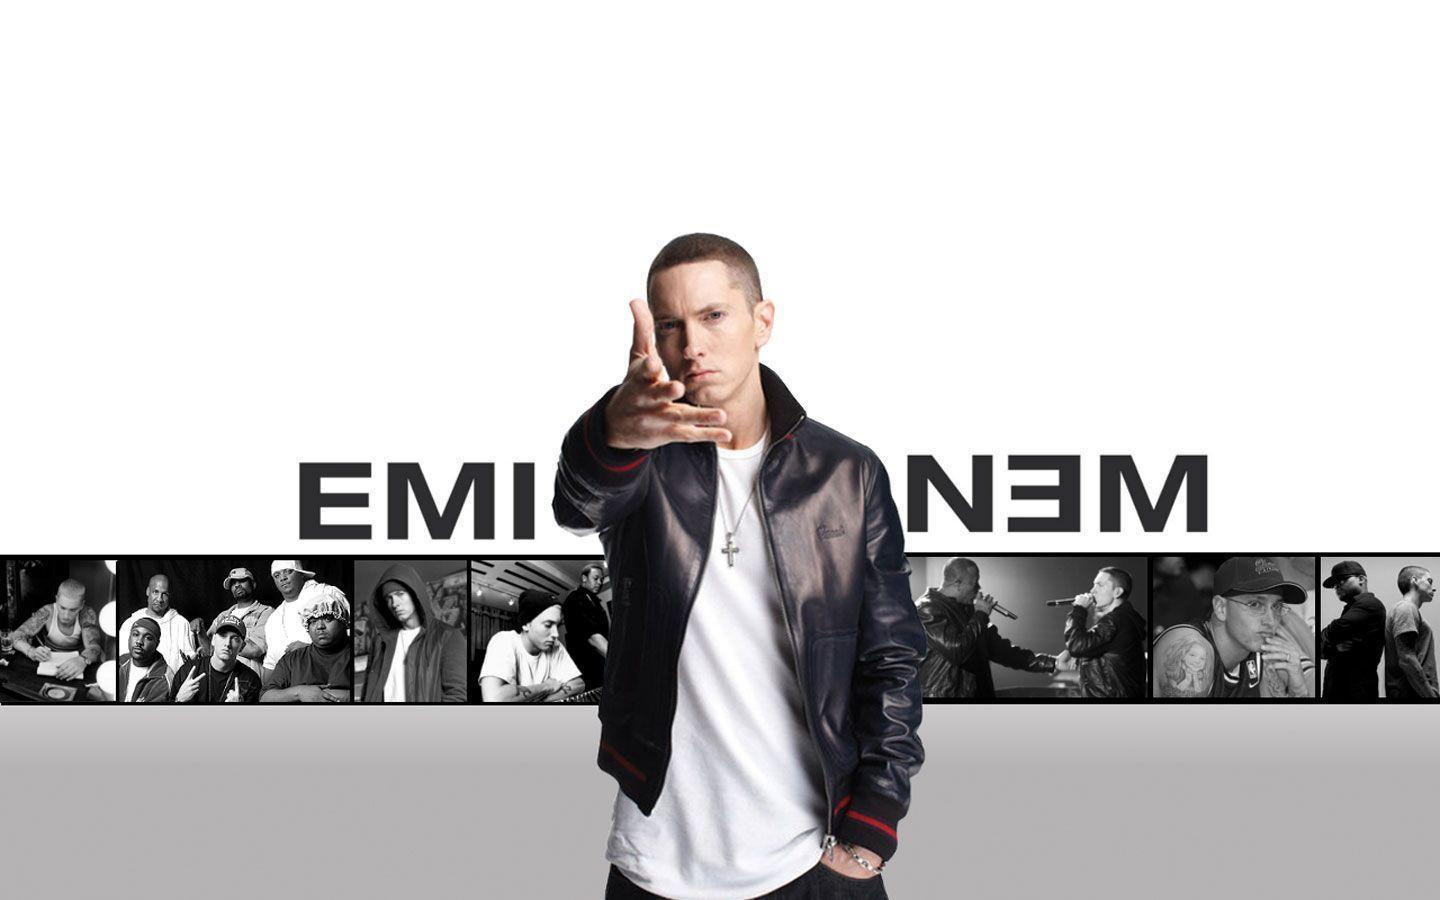 eminem wallpapers - photo #3